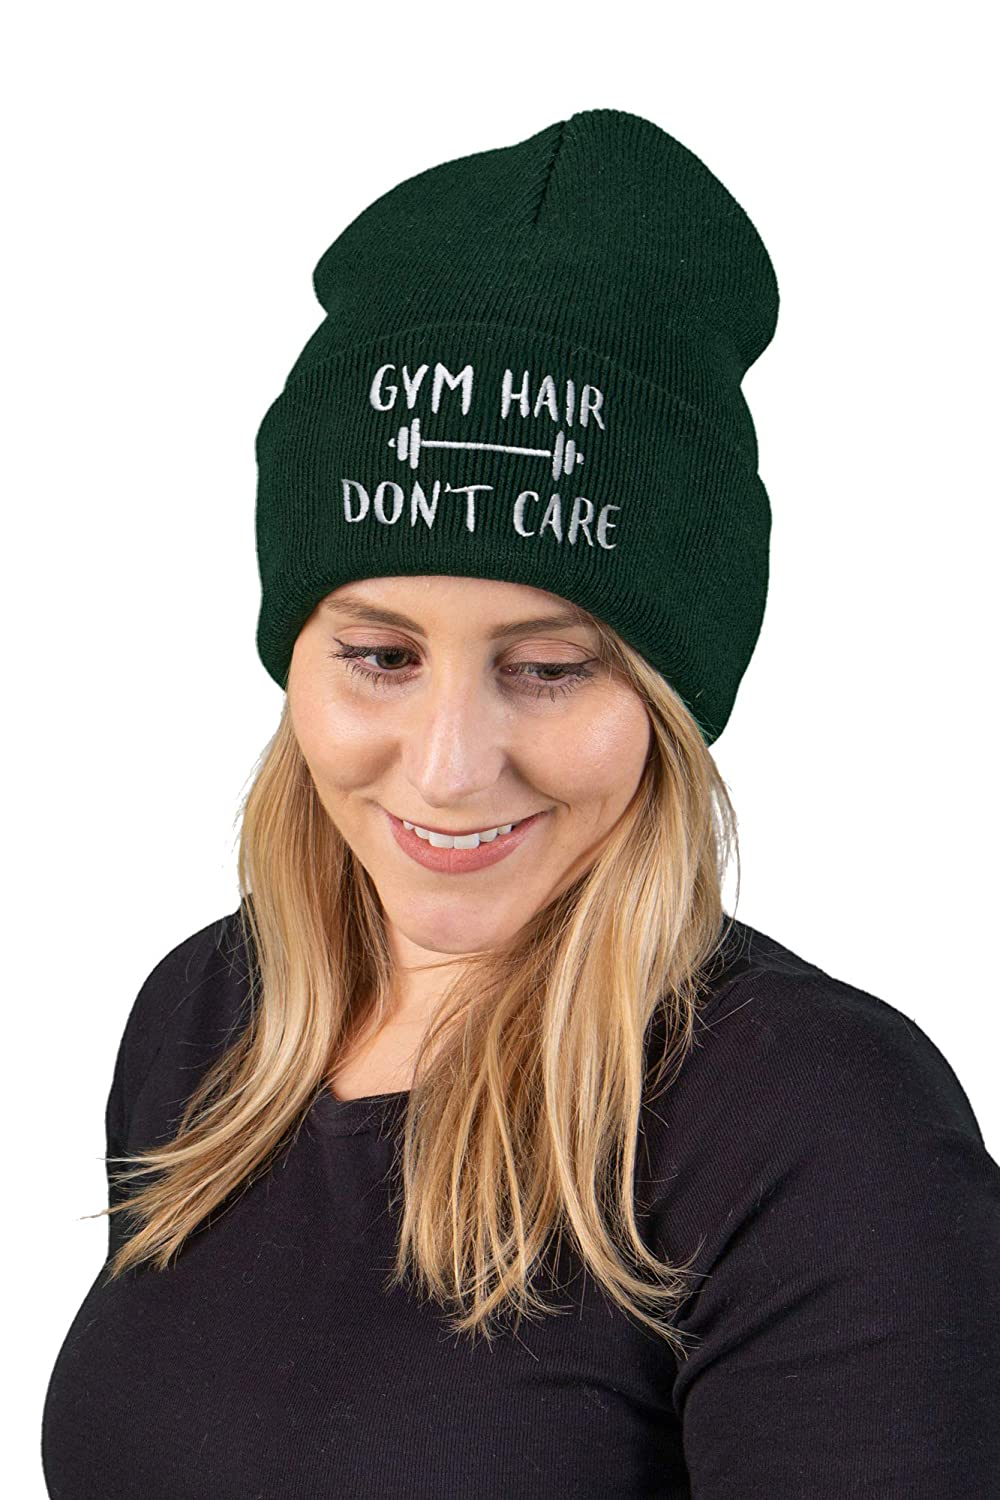 947d6c98da656 Funky Junque Embroidered Beanie Dog Mom Gym Sports Holiday Knitted Hat  Skull Cap